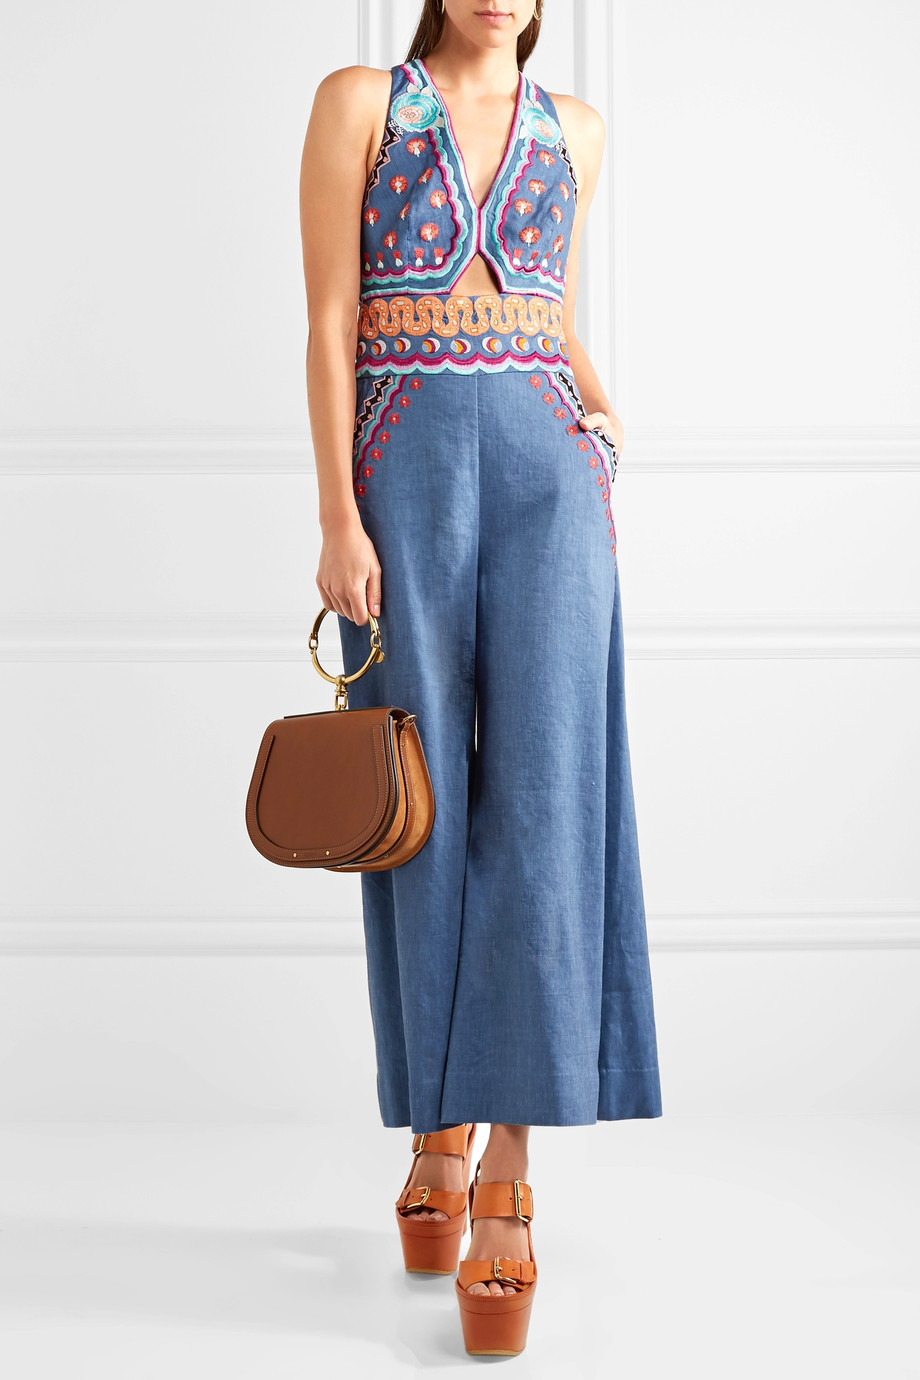 Temperley London Spellbound embroidered linen-blend chambray jumpsuit $1,295